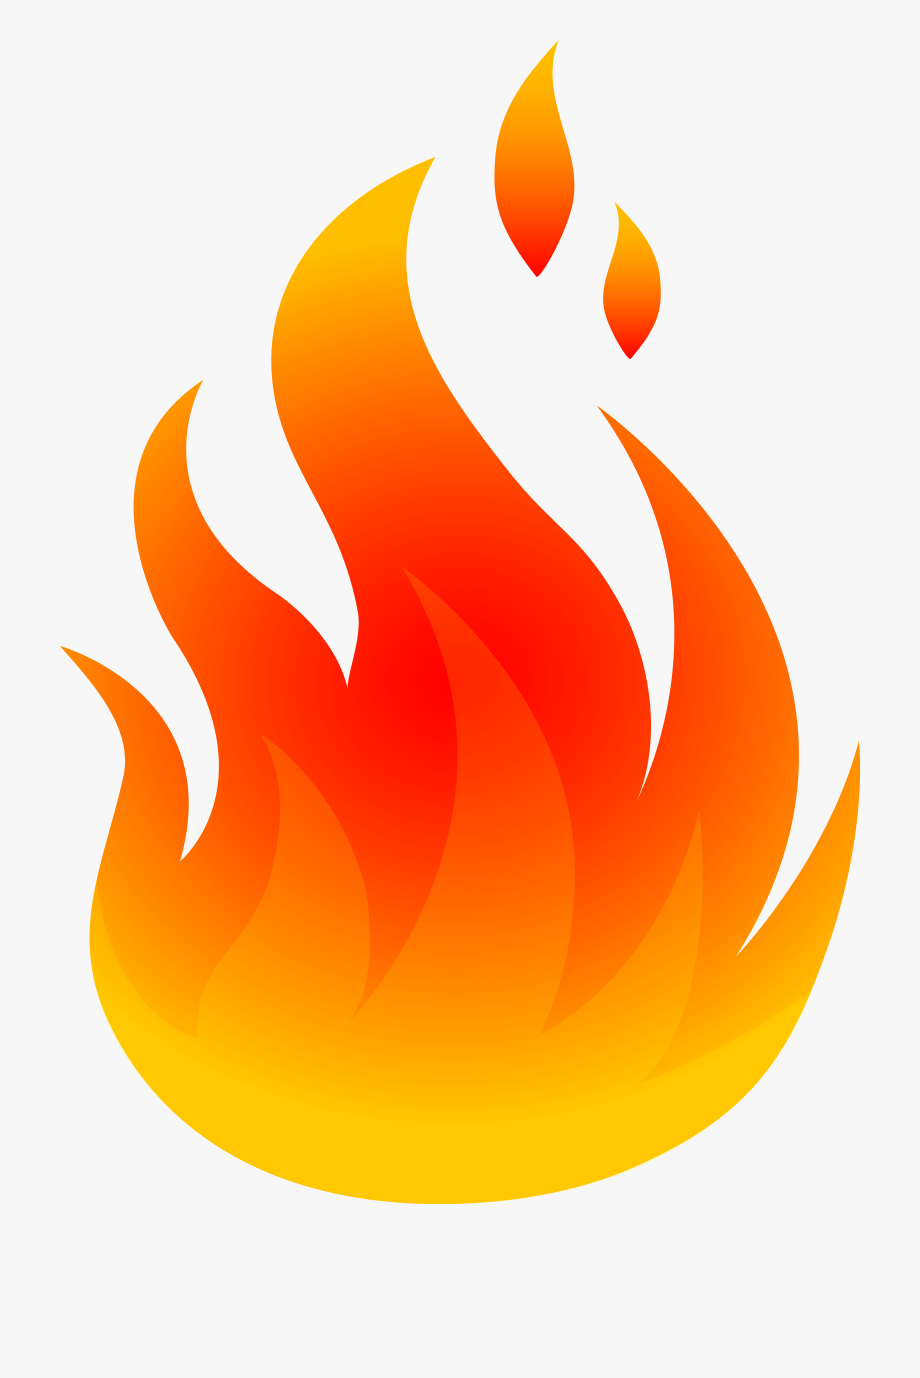 Fire Flames Clipart Free Clipart Image.